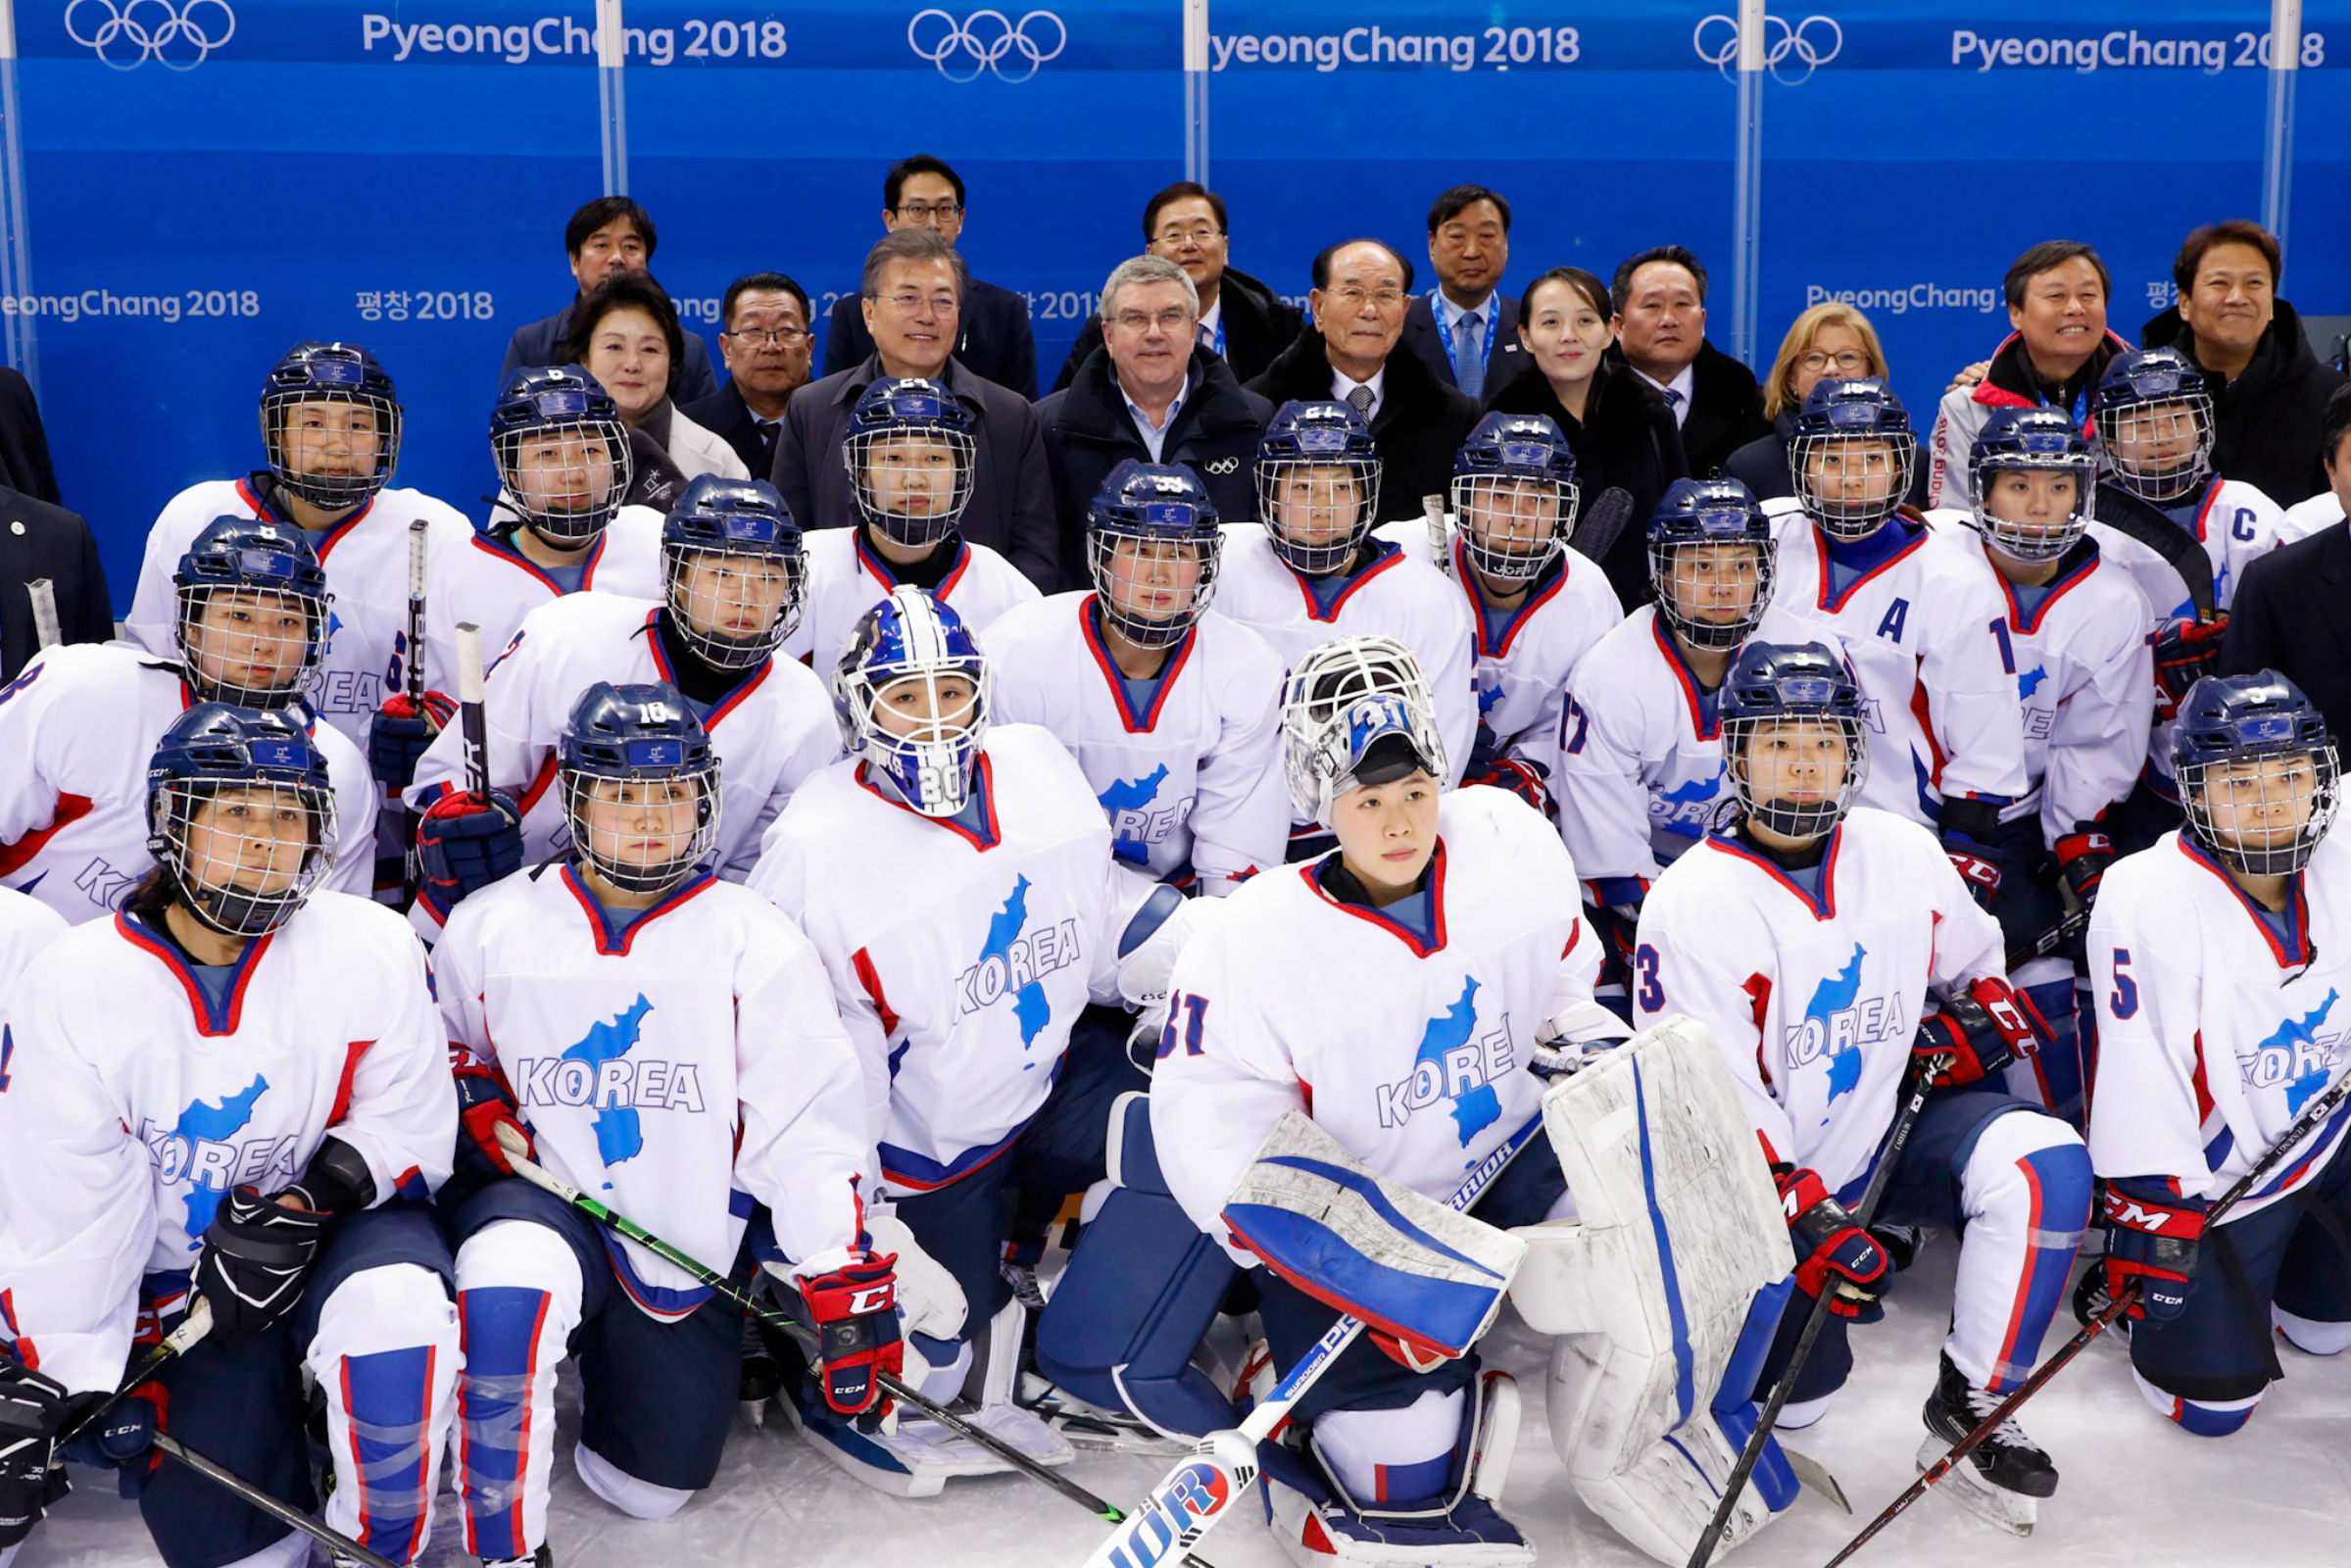 IOC President Thomas Bach meets Unified Korean Women's Ice Hockey team